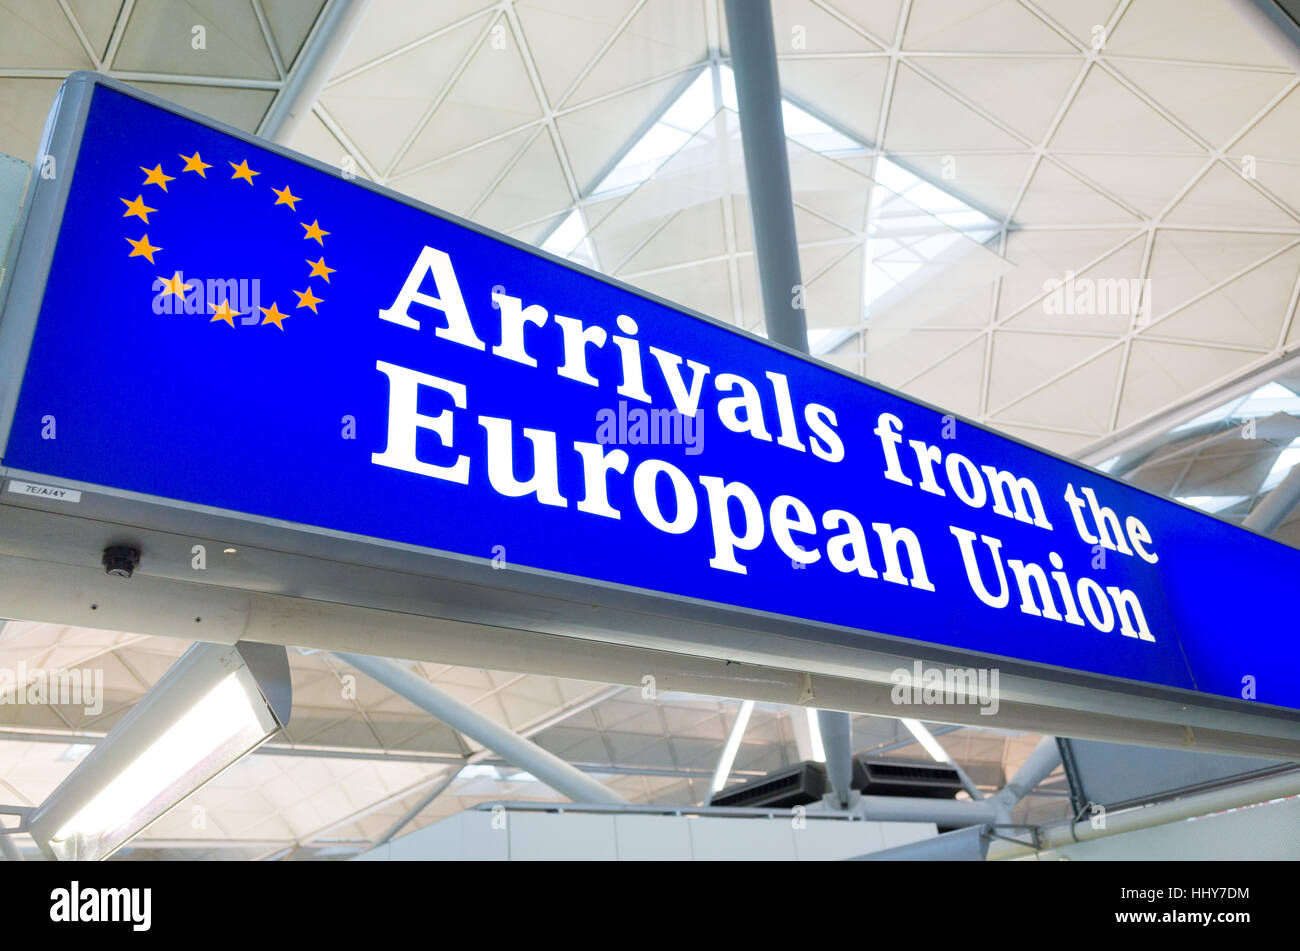 Arrivals from the European Union customs channel at Stansted Airport, England, UK - Stock Image